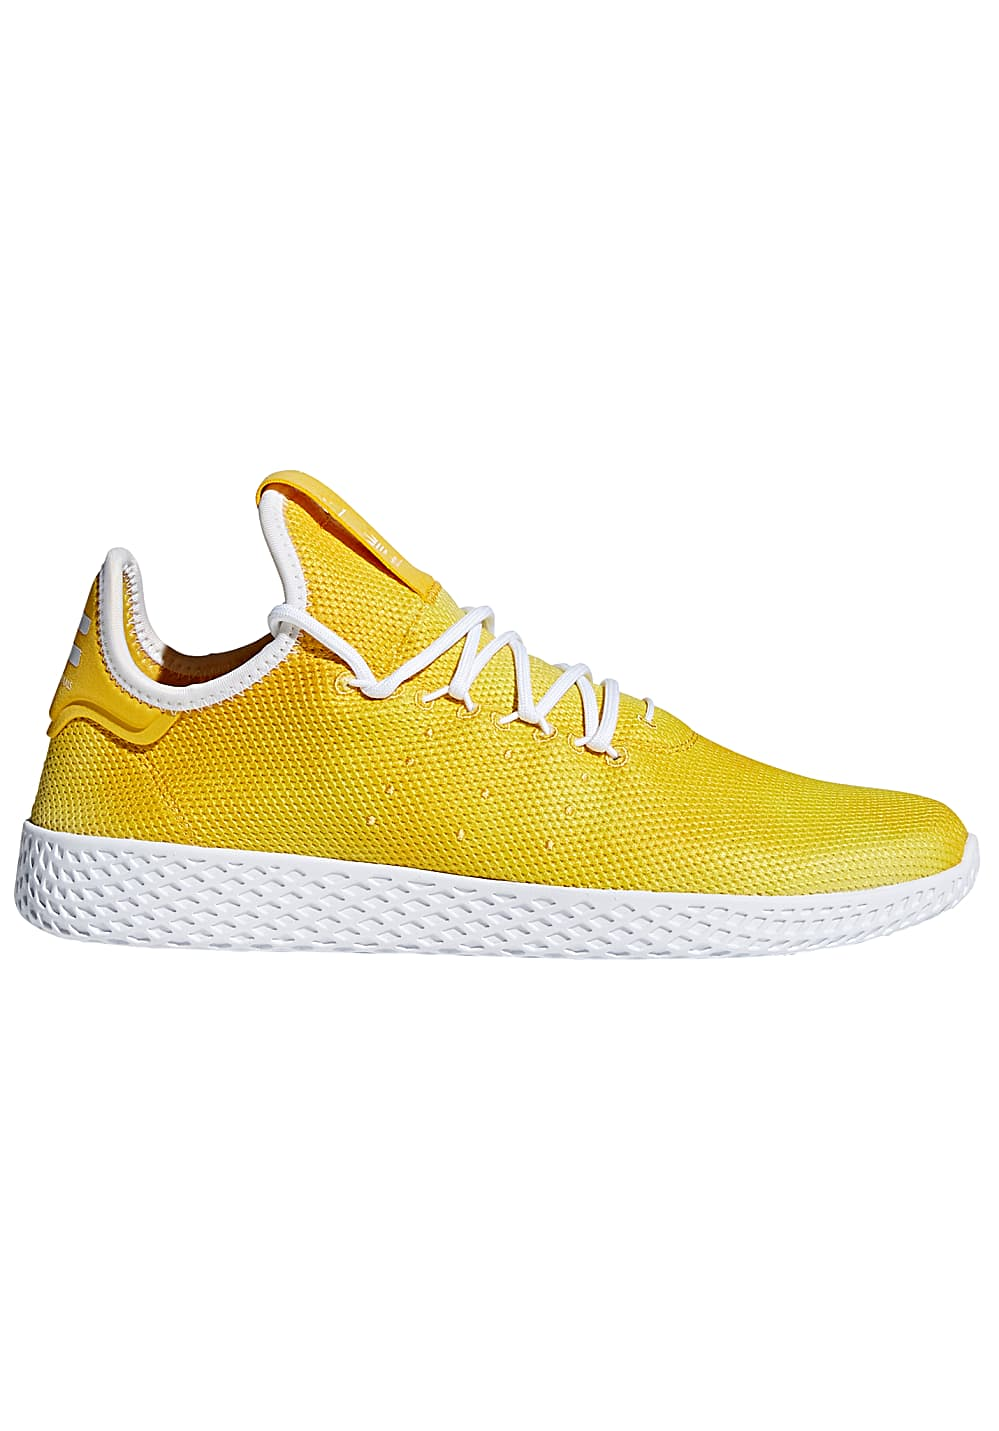 adidas Originals Pharrell Williams Hu Holi Tennis Hu Sneaker für Herren Gelb